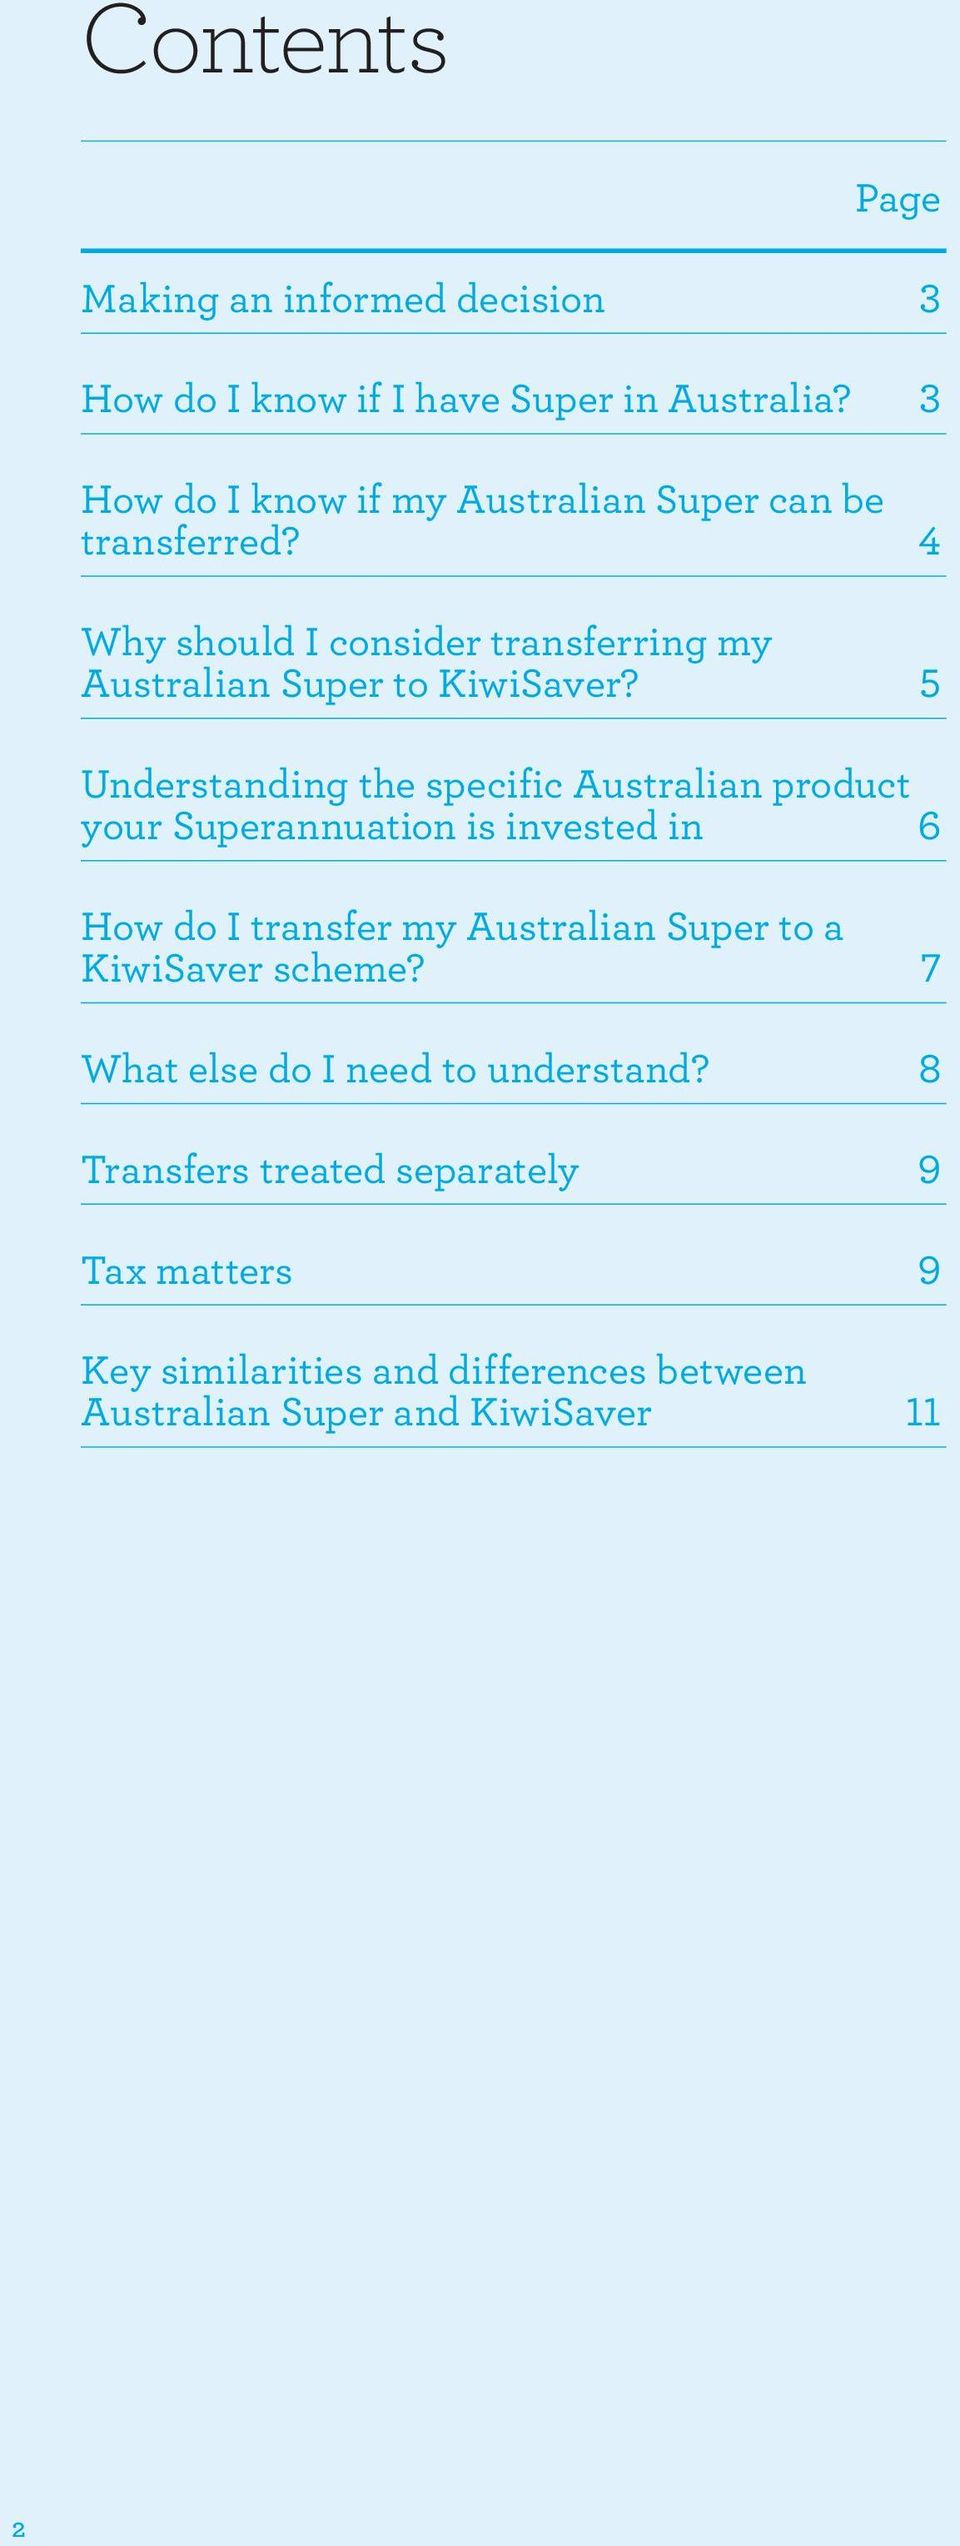 5 Understanding the specific Australian product your Superannuation is invested in 6 How do I transfer my Australian Super to a